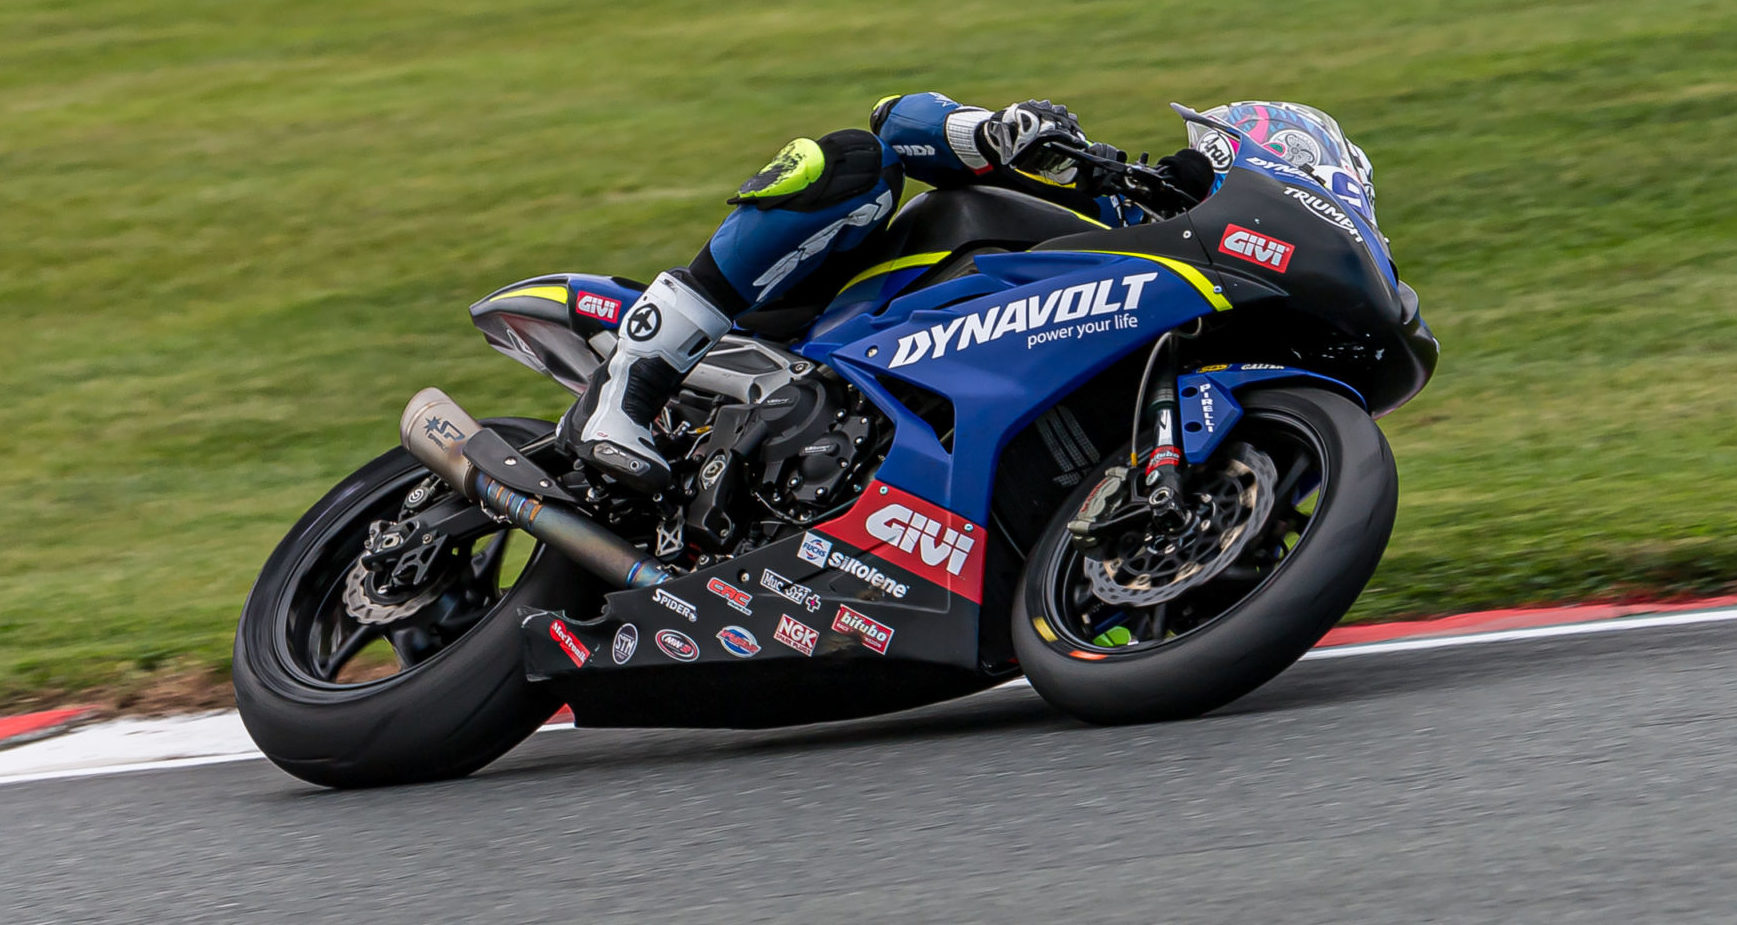 Brandon Paasch (96) in action at Oulton Park. Photo by Barry Clay.